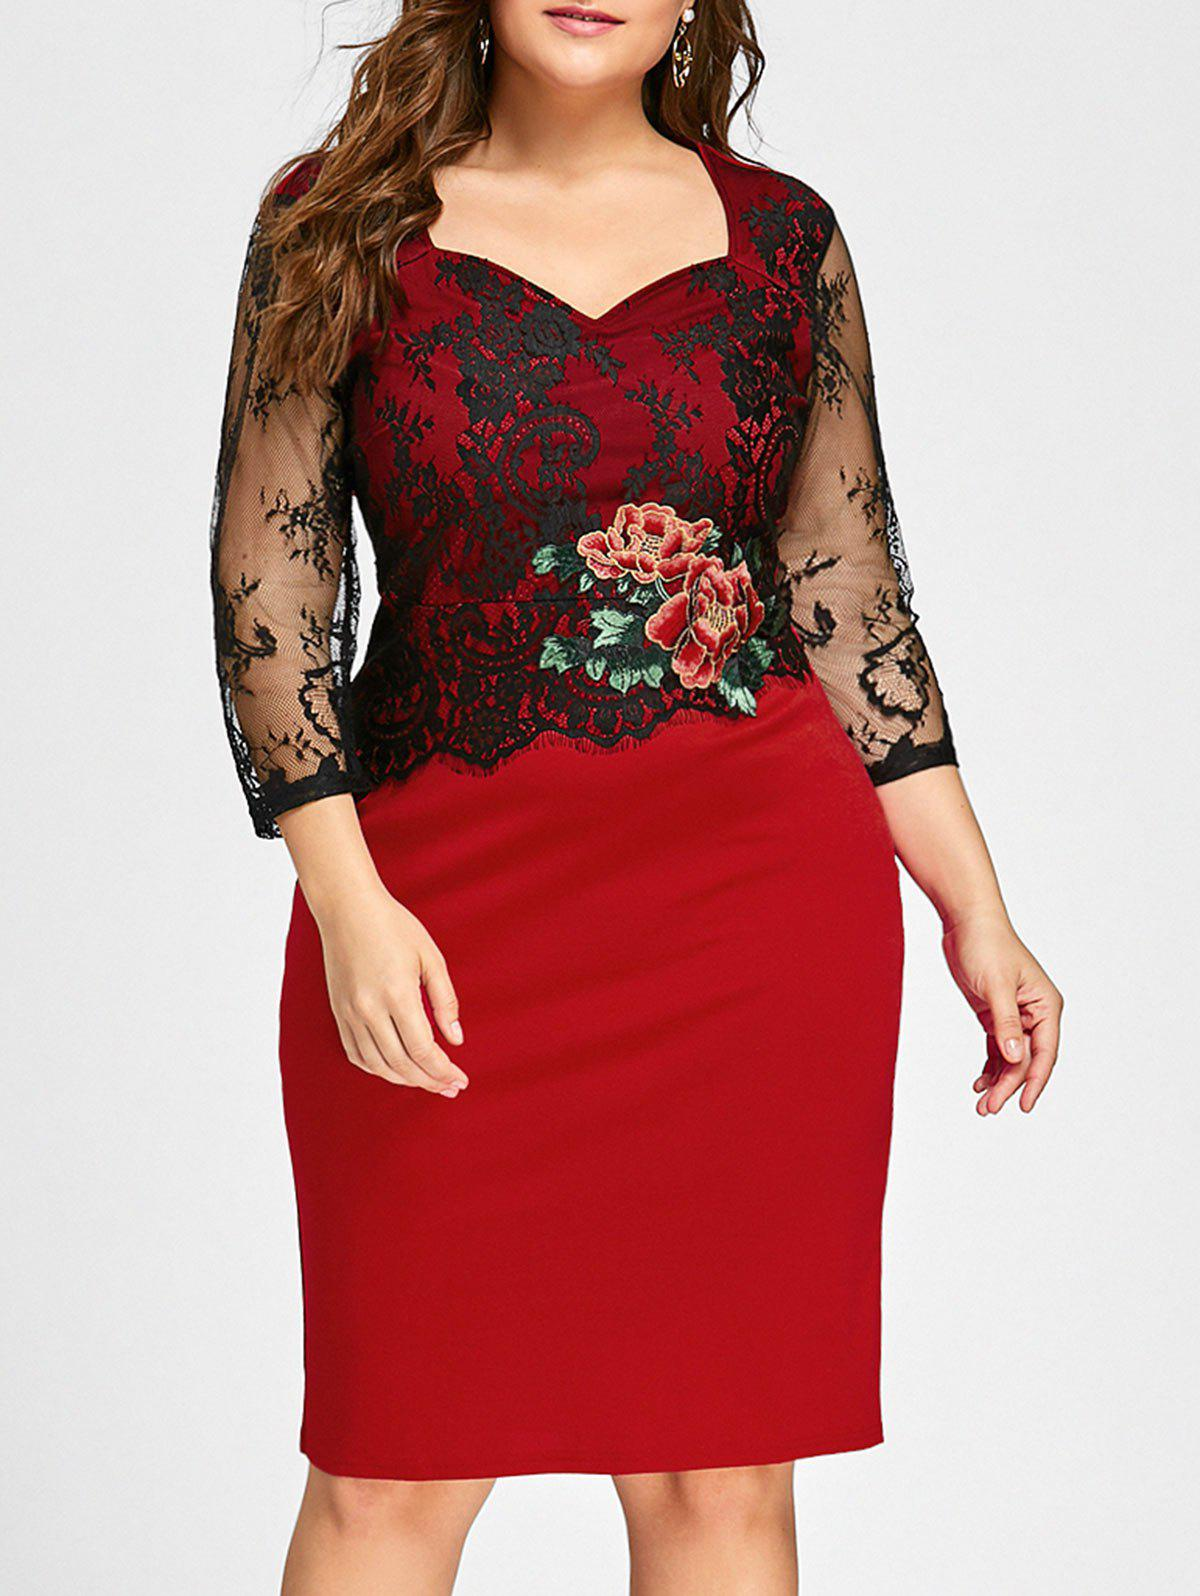 Plus Size Floral Applique Lace Panel Bodycon DressWOMEN<br><br>Size: 4XL; Color: RED; Style: Casual; Material: Cotton,Polyester; Silhouette: Bodycon; Dresses Length: Knee-Length; Neckline: Sweetheart Neck; Sleeve Length: 3/4 Length Sleeves; Embellishment: Appliques; Pattern Type: Floral; With Belt: No; Season: Fall,Spring; Weight: 0.3900kg; Package Contents: 1 x Dress;